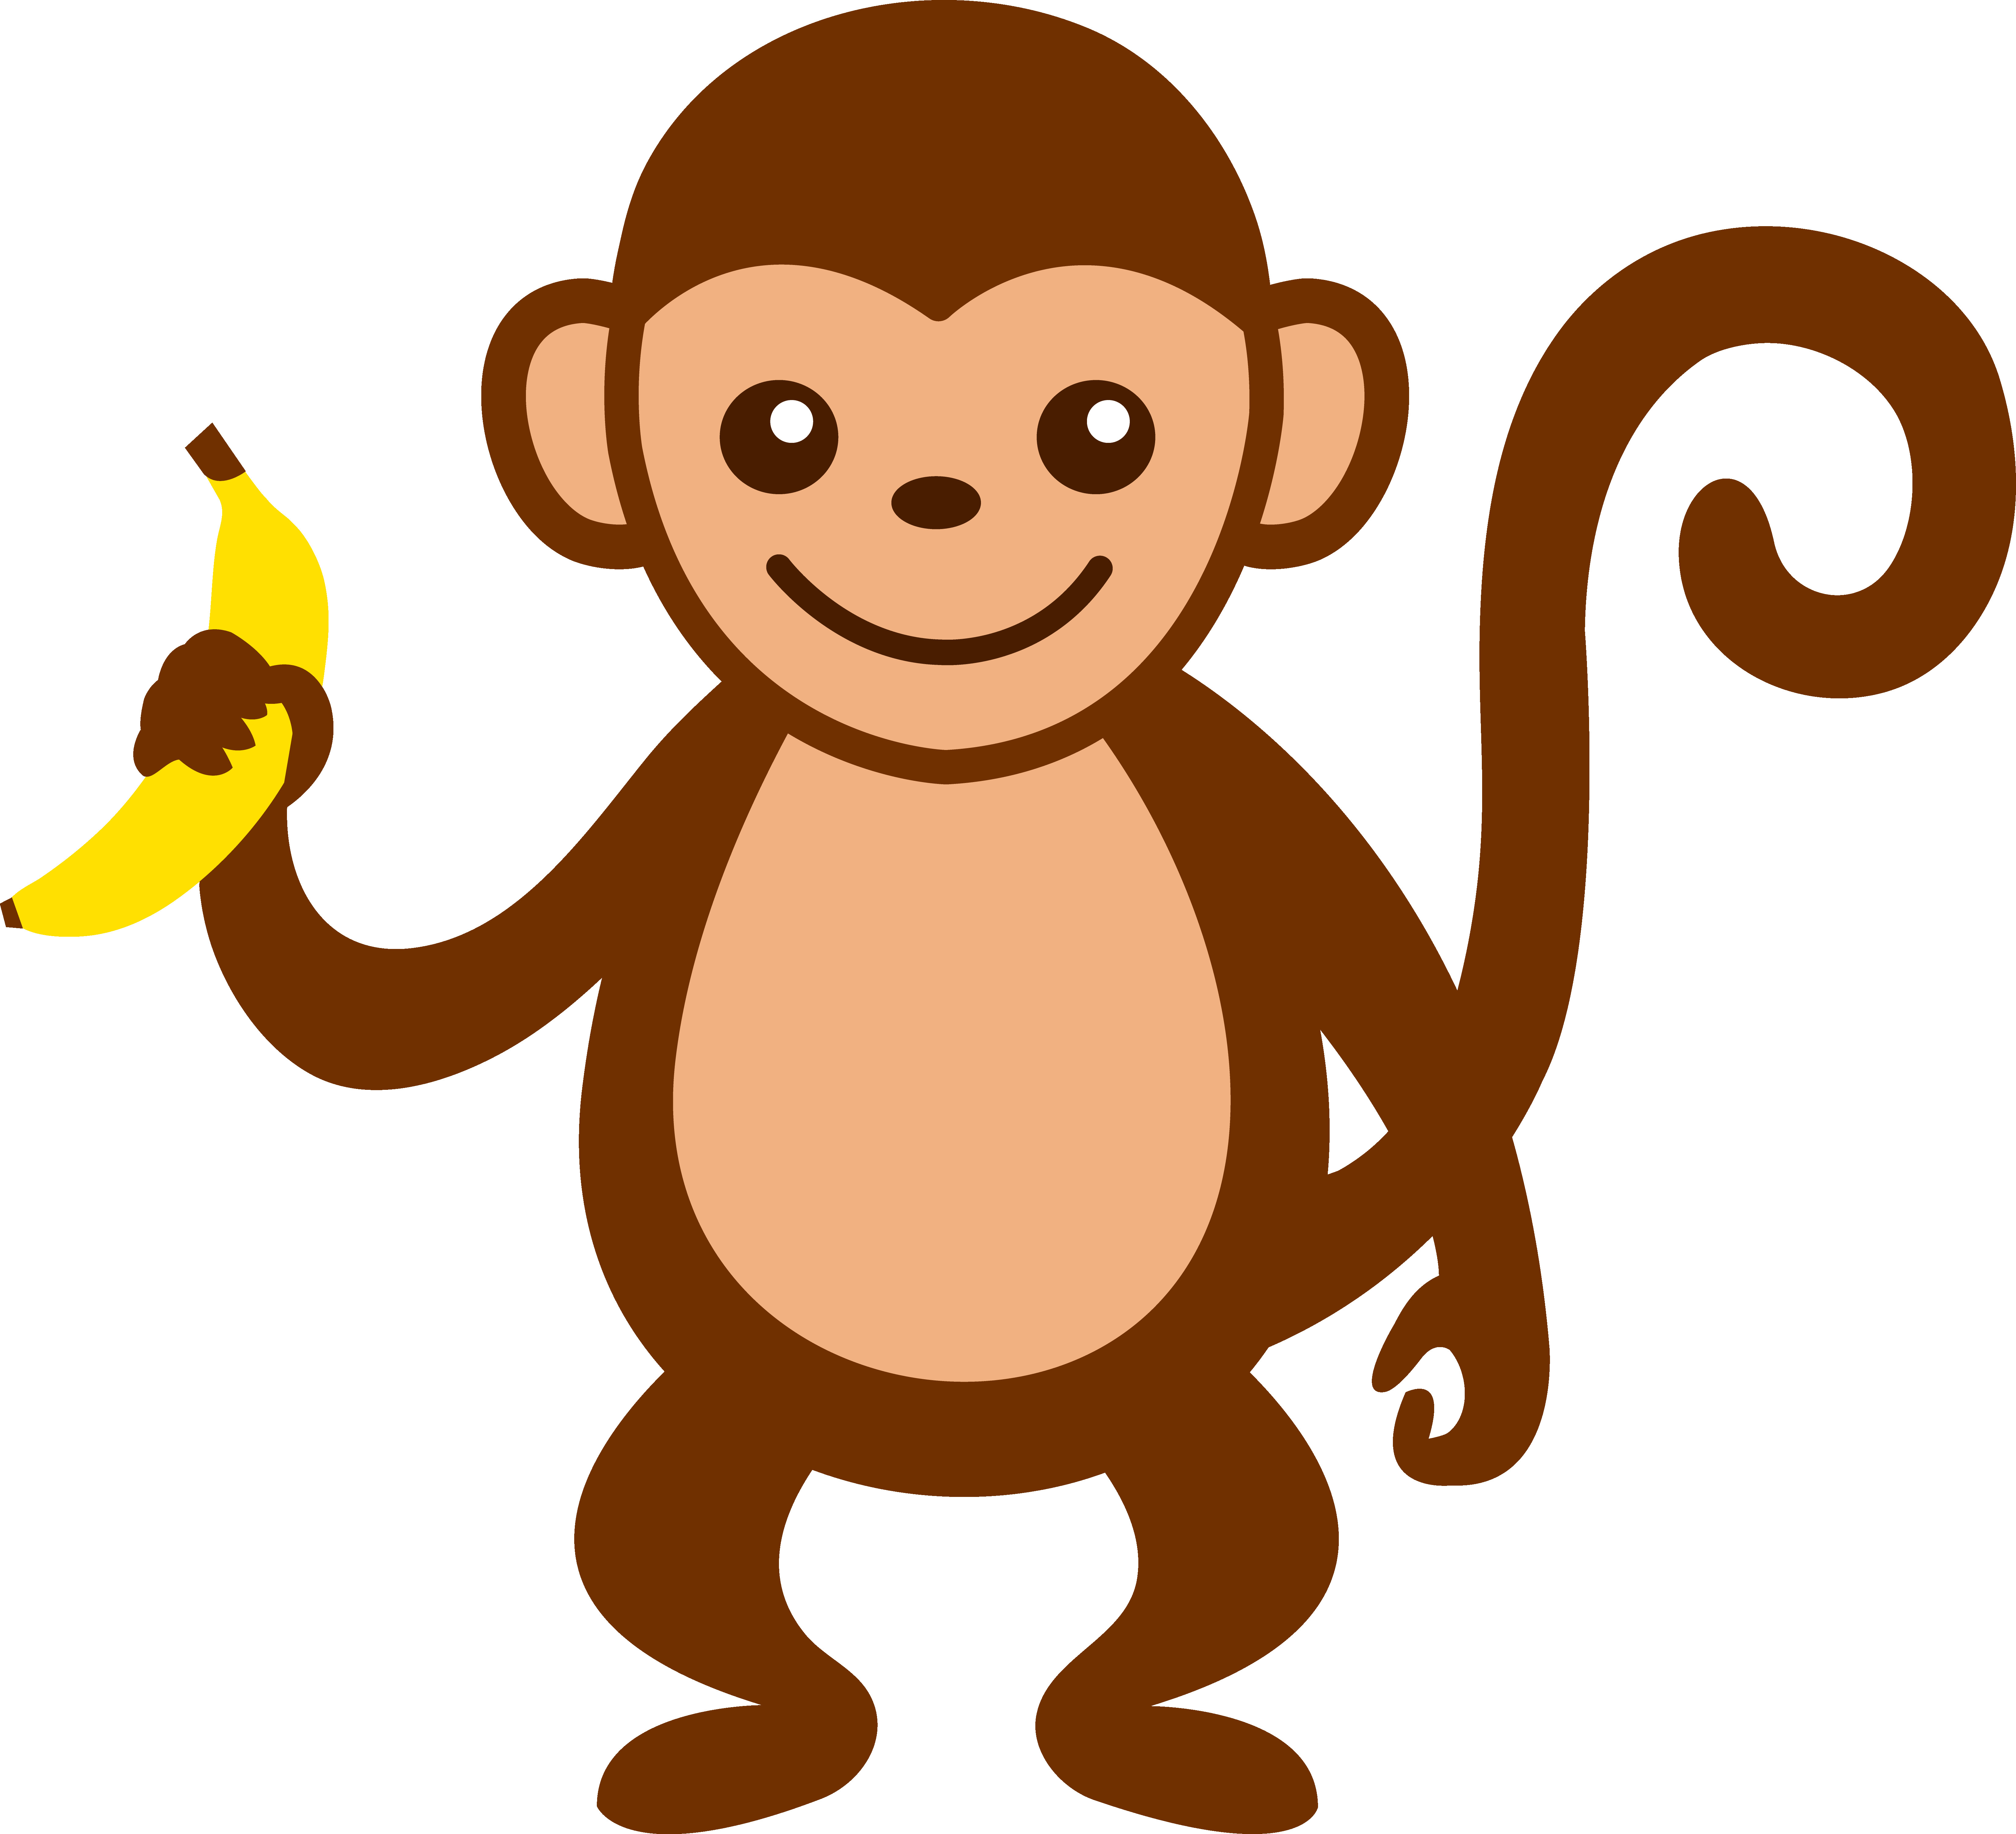 funny monkey clipart at getdrawings com free for personal use rh getdrawings com clipart of donkeys clipart of monkeys in trees